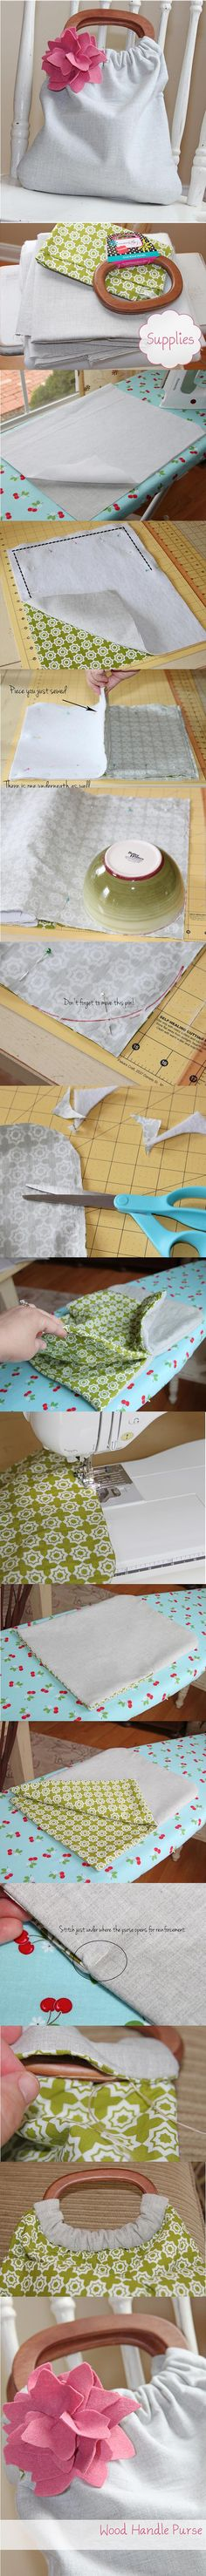 DIY: Bag Made ​​With Wooden Handles And Fabric. Easy, clear instructions with great pics to make this teen project an easy DIY purse that can be styled to a one of a kind fashion statement.